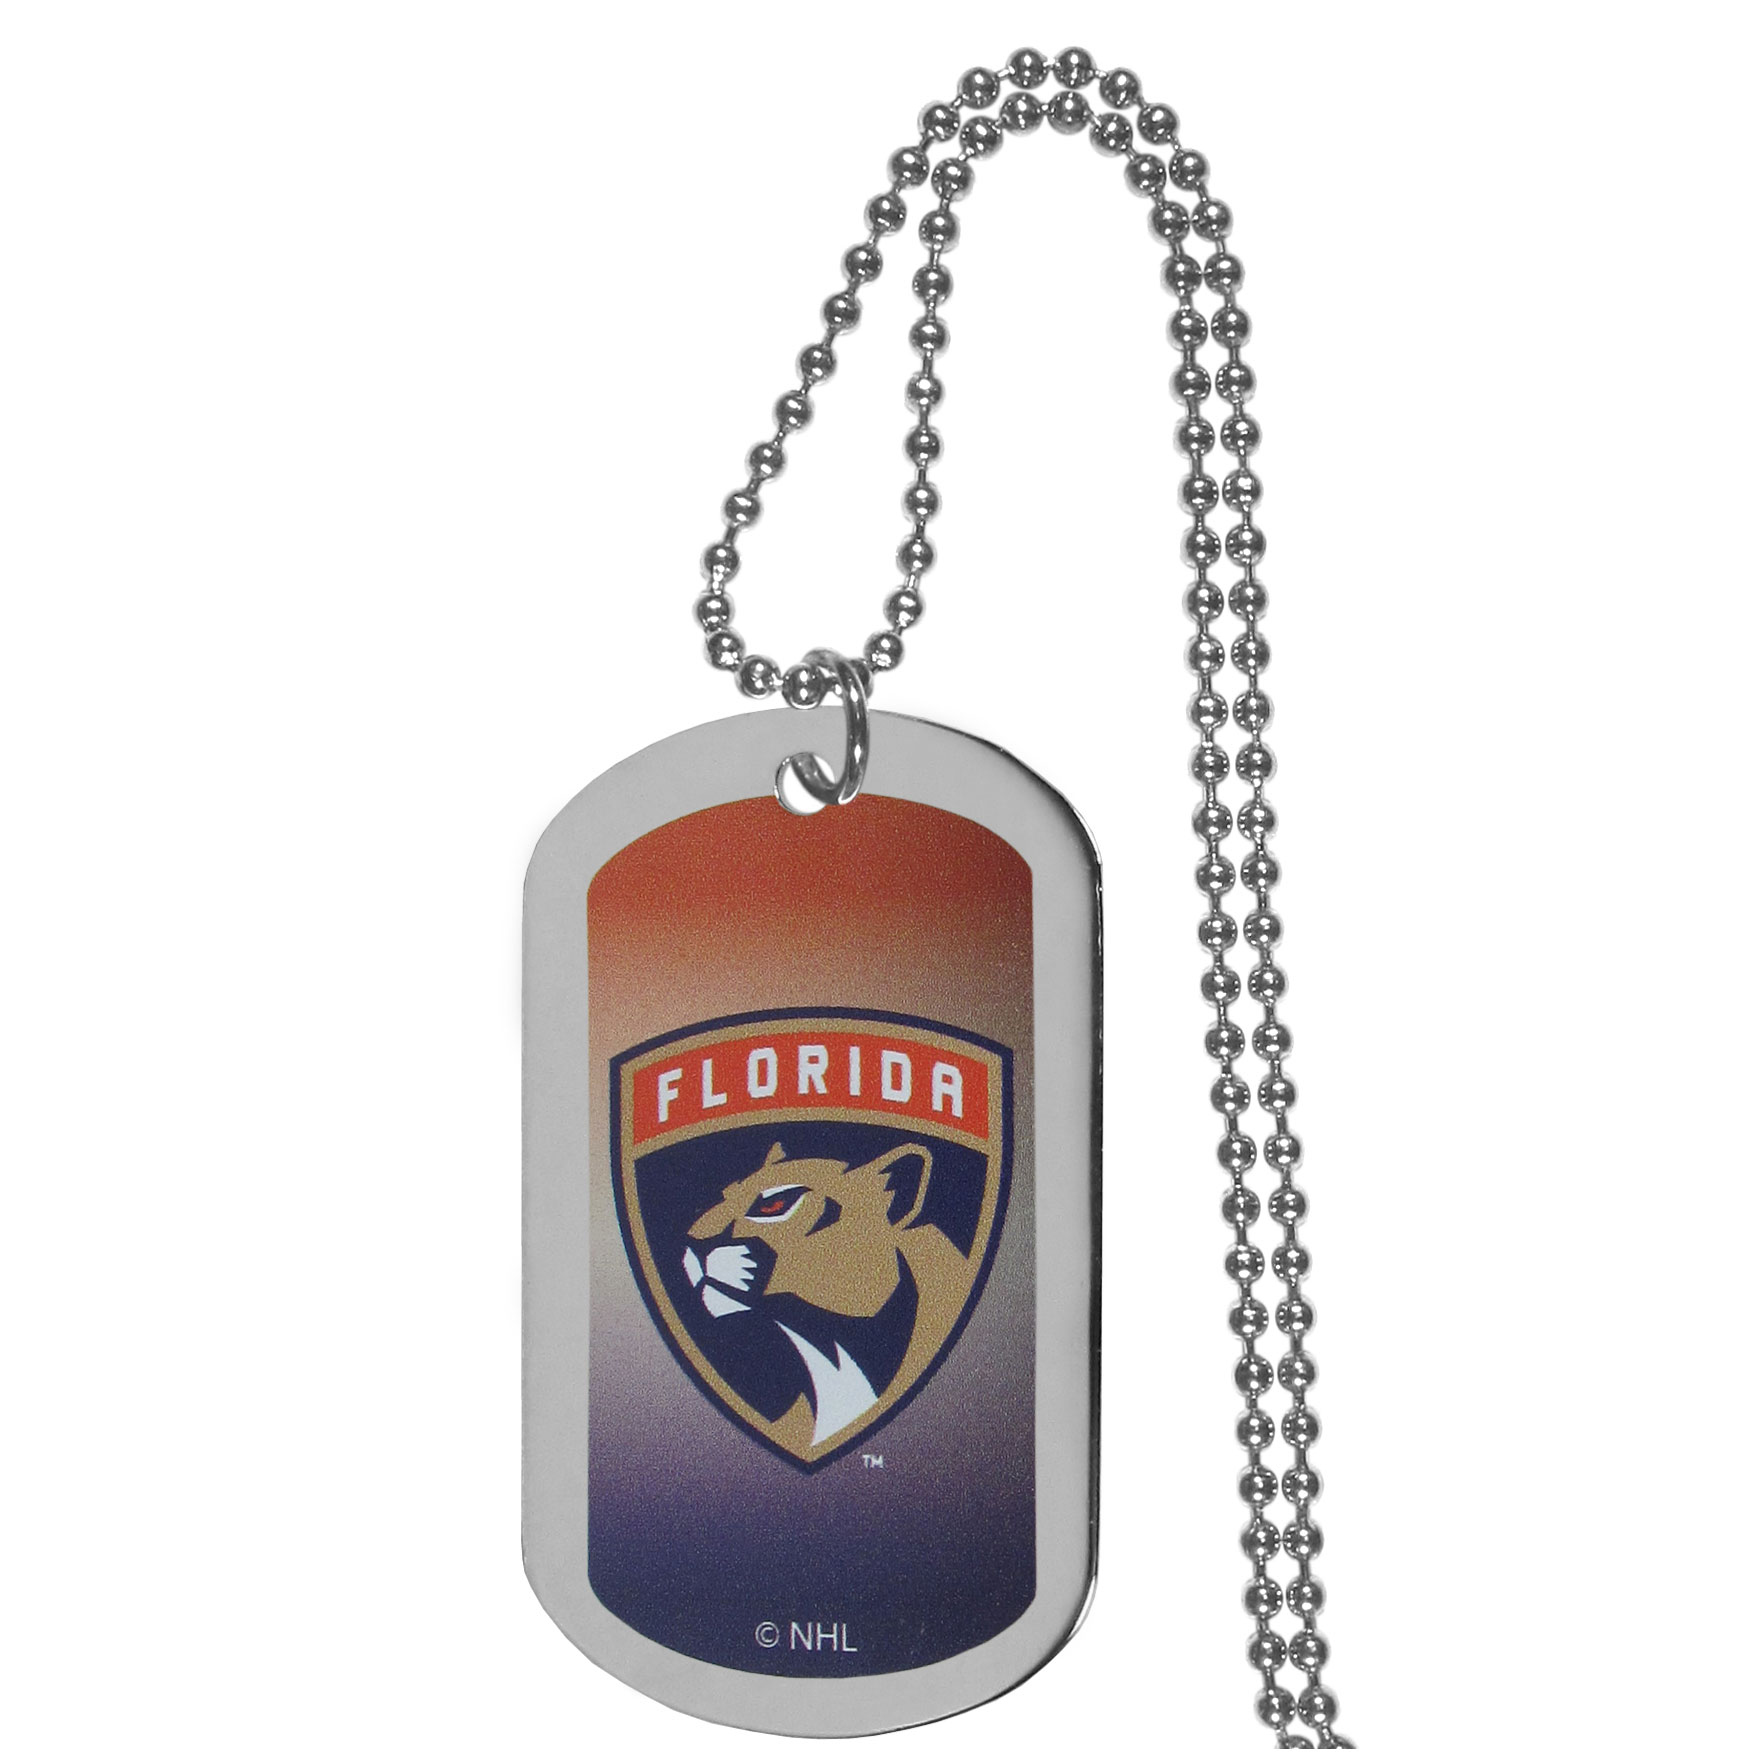 Florida Panthers® Team Tag Necklace - Dog tag necklaces are a fashion statement that is here to stay. The sporty version of the classic tag features a gradient print in team colors featuring a full color team logo over a high polish tag to create a bold and sporty look. The tag comes on a 26 inch ball chain with a ball and joint clasp. Any Florida Panthers® would be proud to wear this attractive fashion accessory.